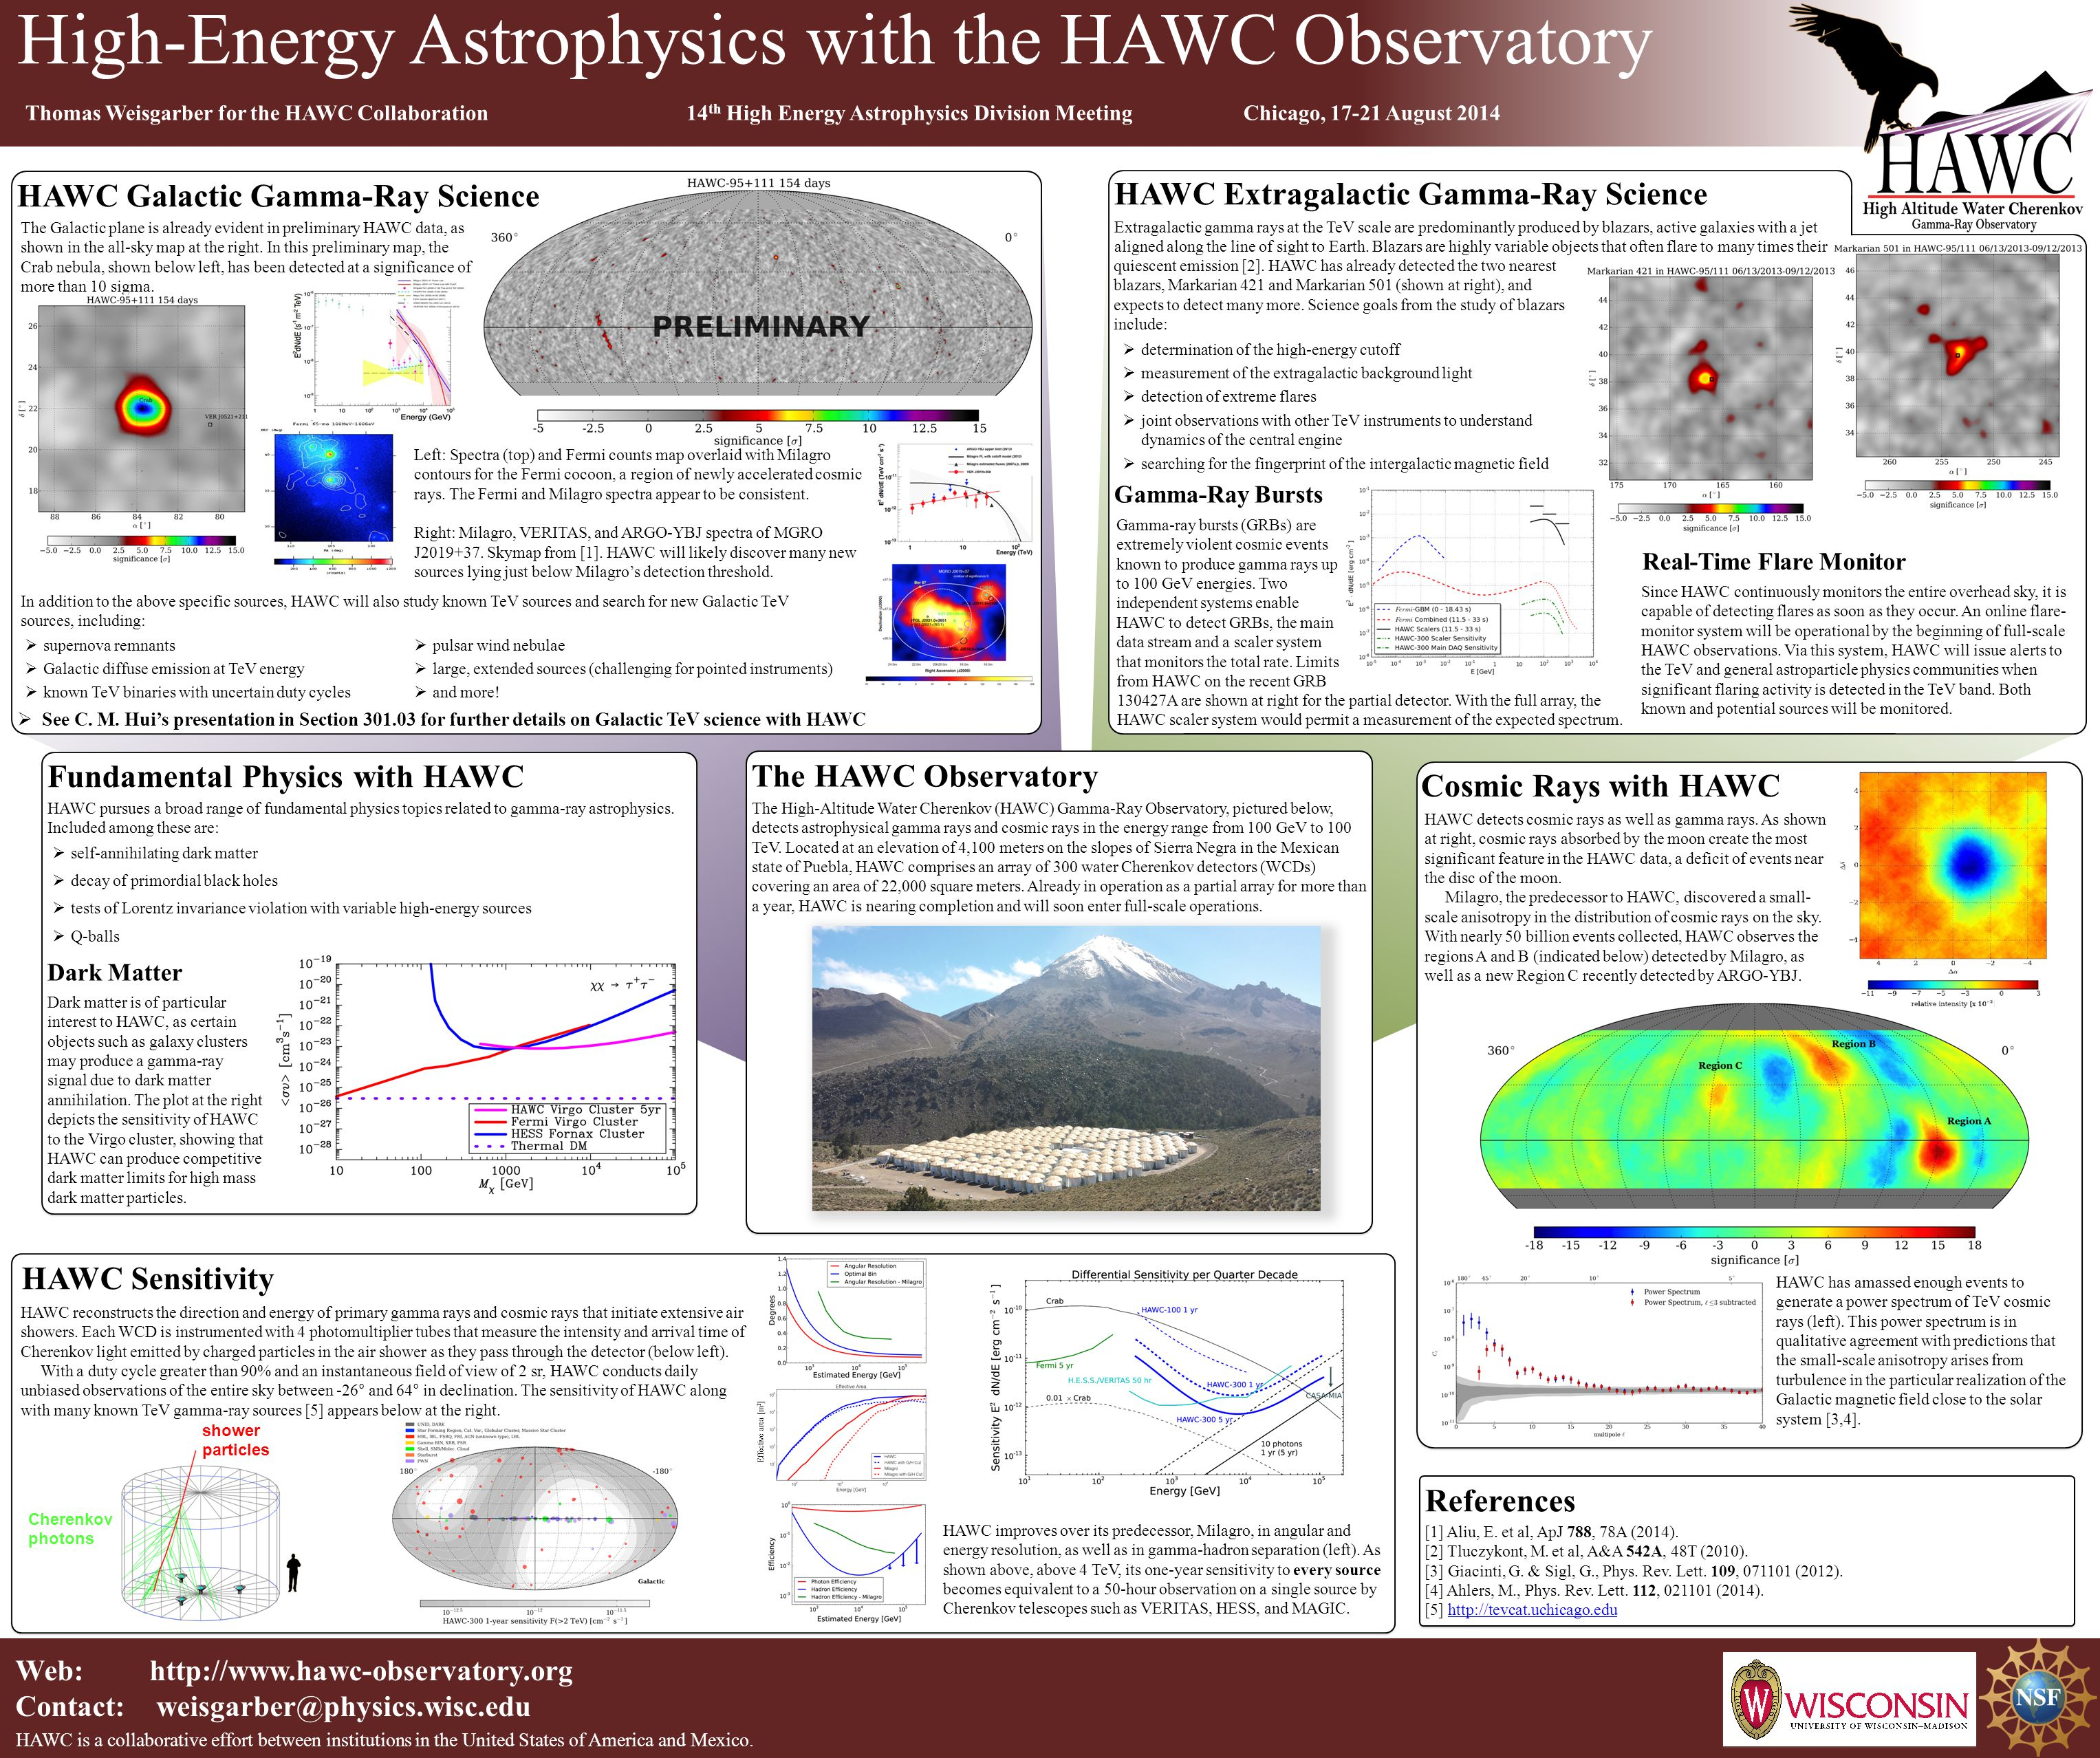 Web: http://www.hawc-observatory.org Contact: weisgarber@physics.wisc.edu HAWC is a collaborative effort between institutions in the United States of America and Mexico.